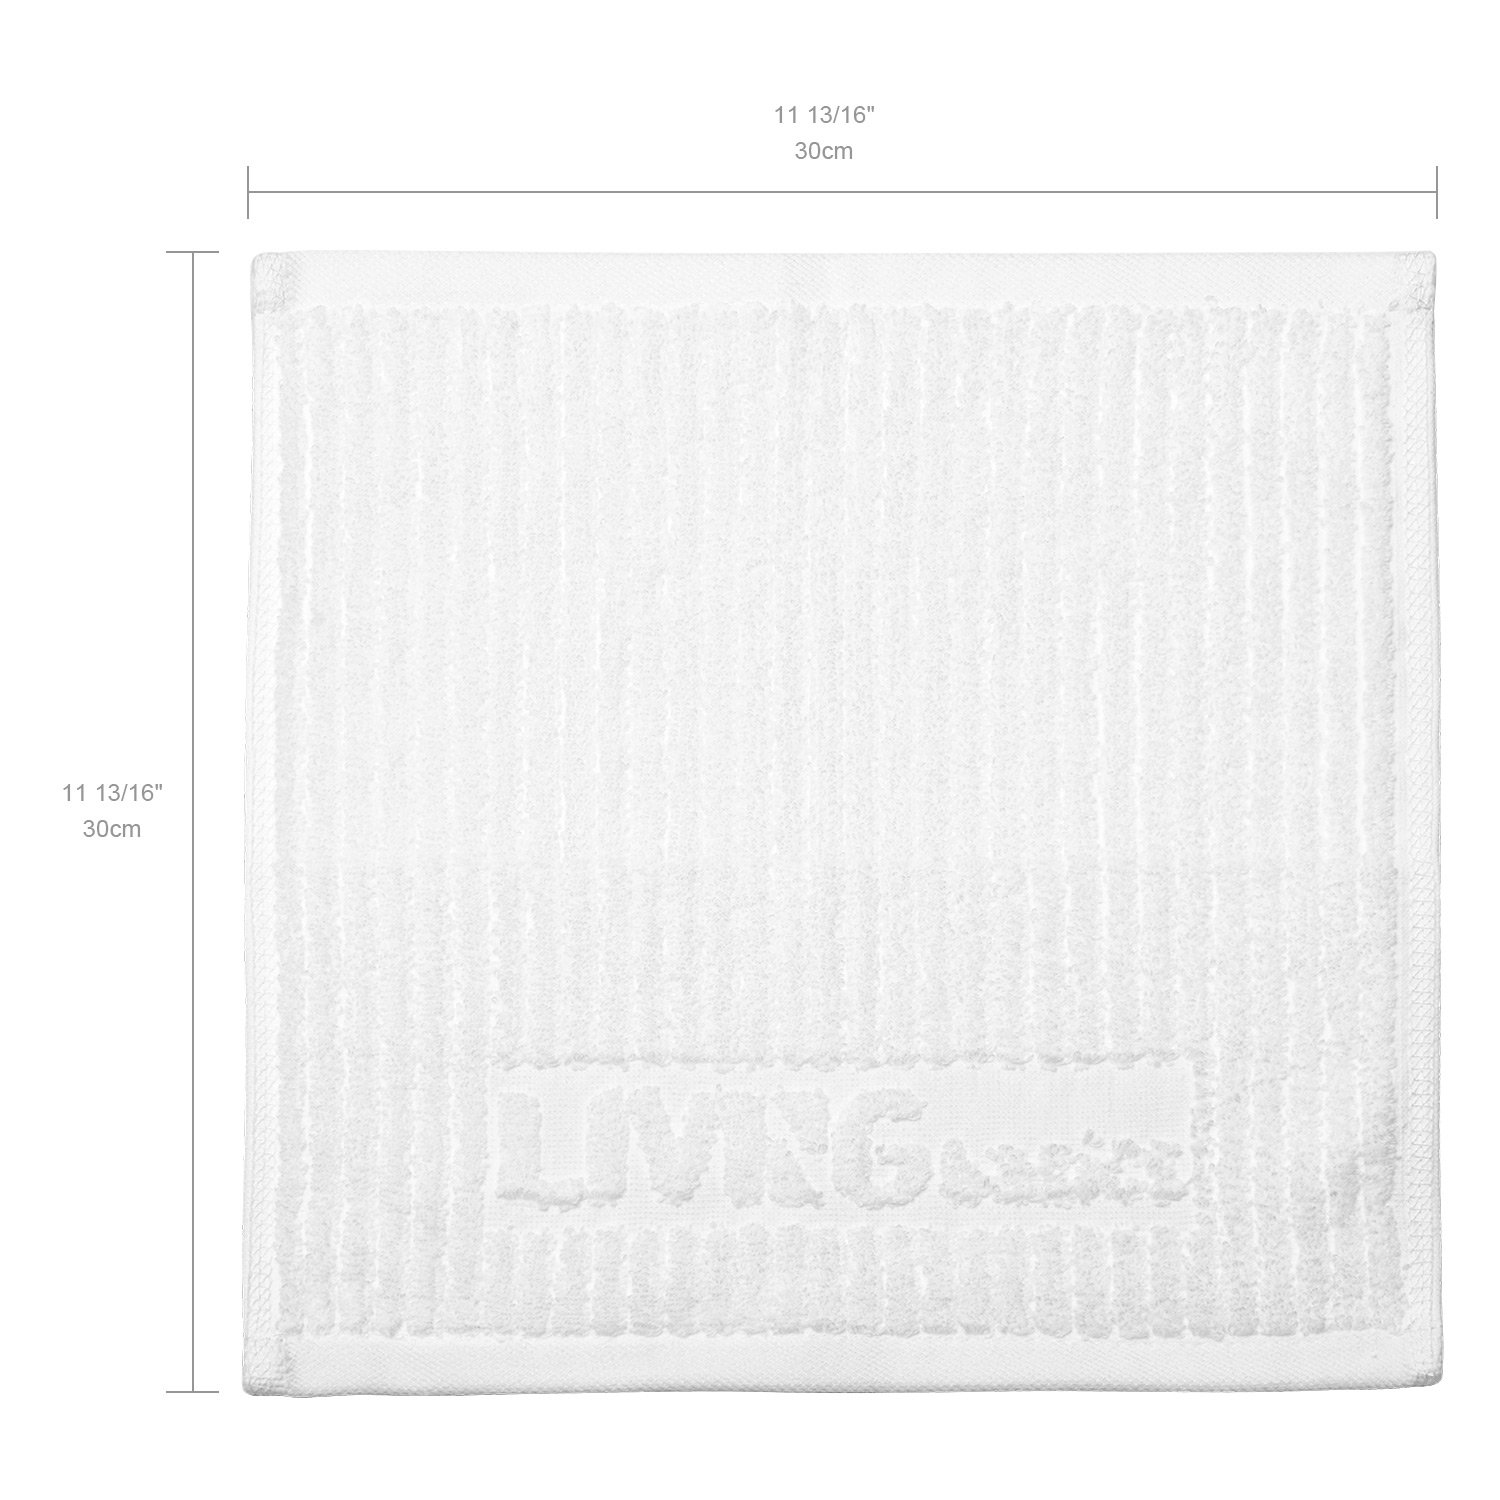 White Highly Absorbent Face Towels LIVINGbasics/™ 100/% Cotton Washcloth Extra Soft Fingertip Towels Set Machine Washable Sport and Workout Towels Pack of 24